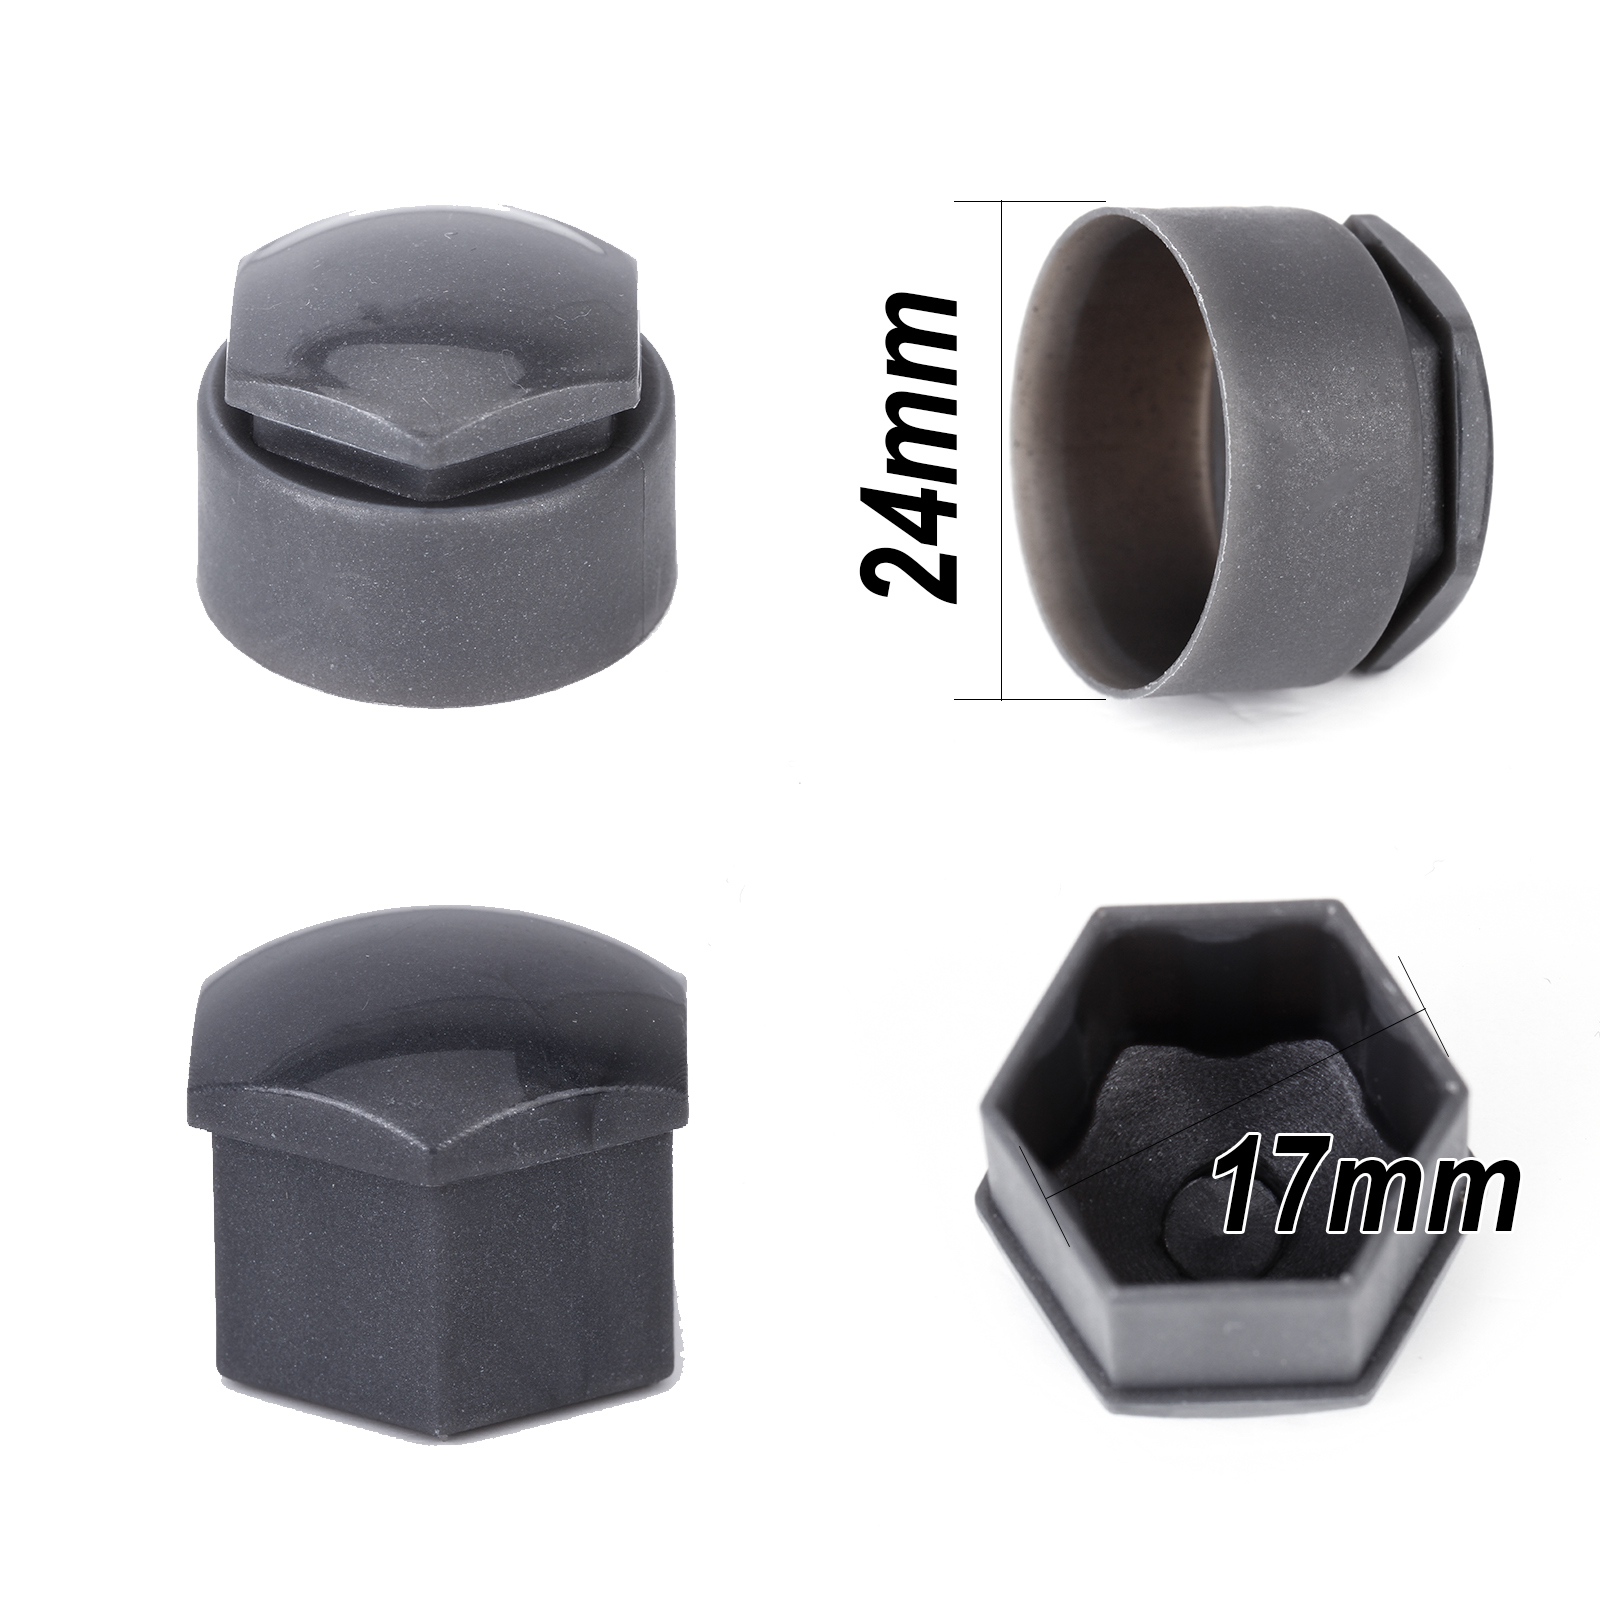 17mm car locking caps bolts covers nuts alloy wheel for vw. Black Bedroom Furniture Sets. Home Design Ideas